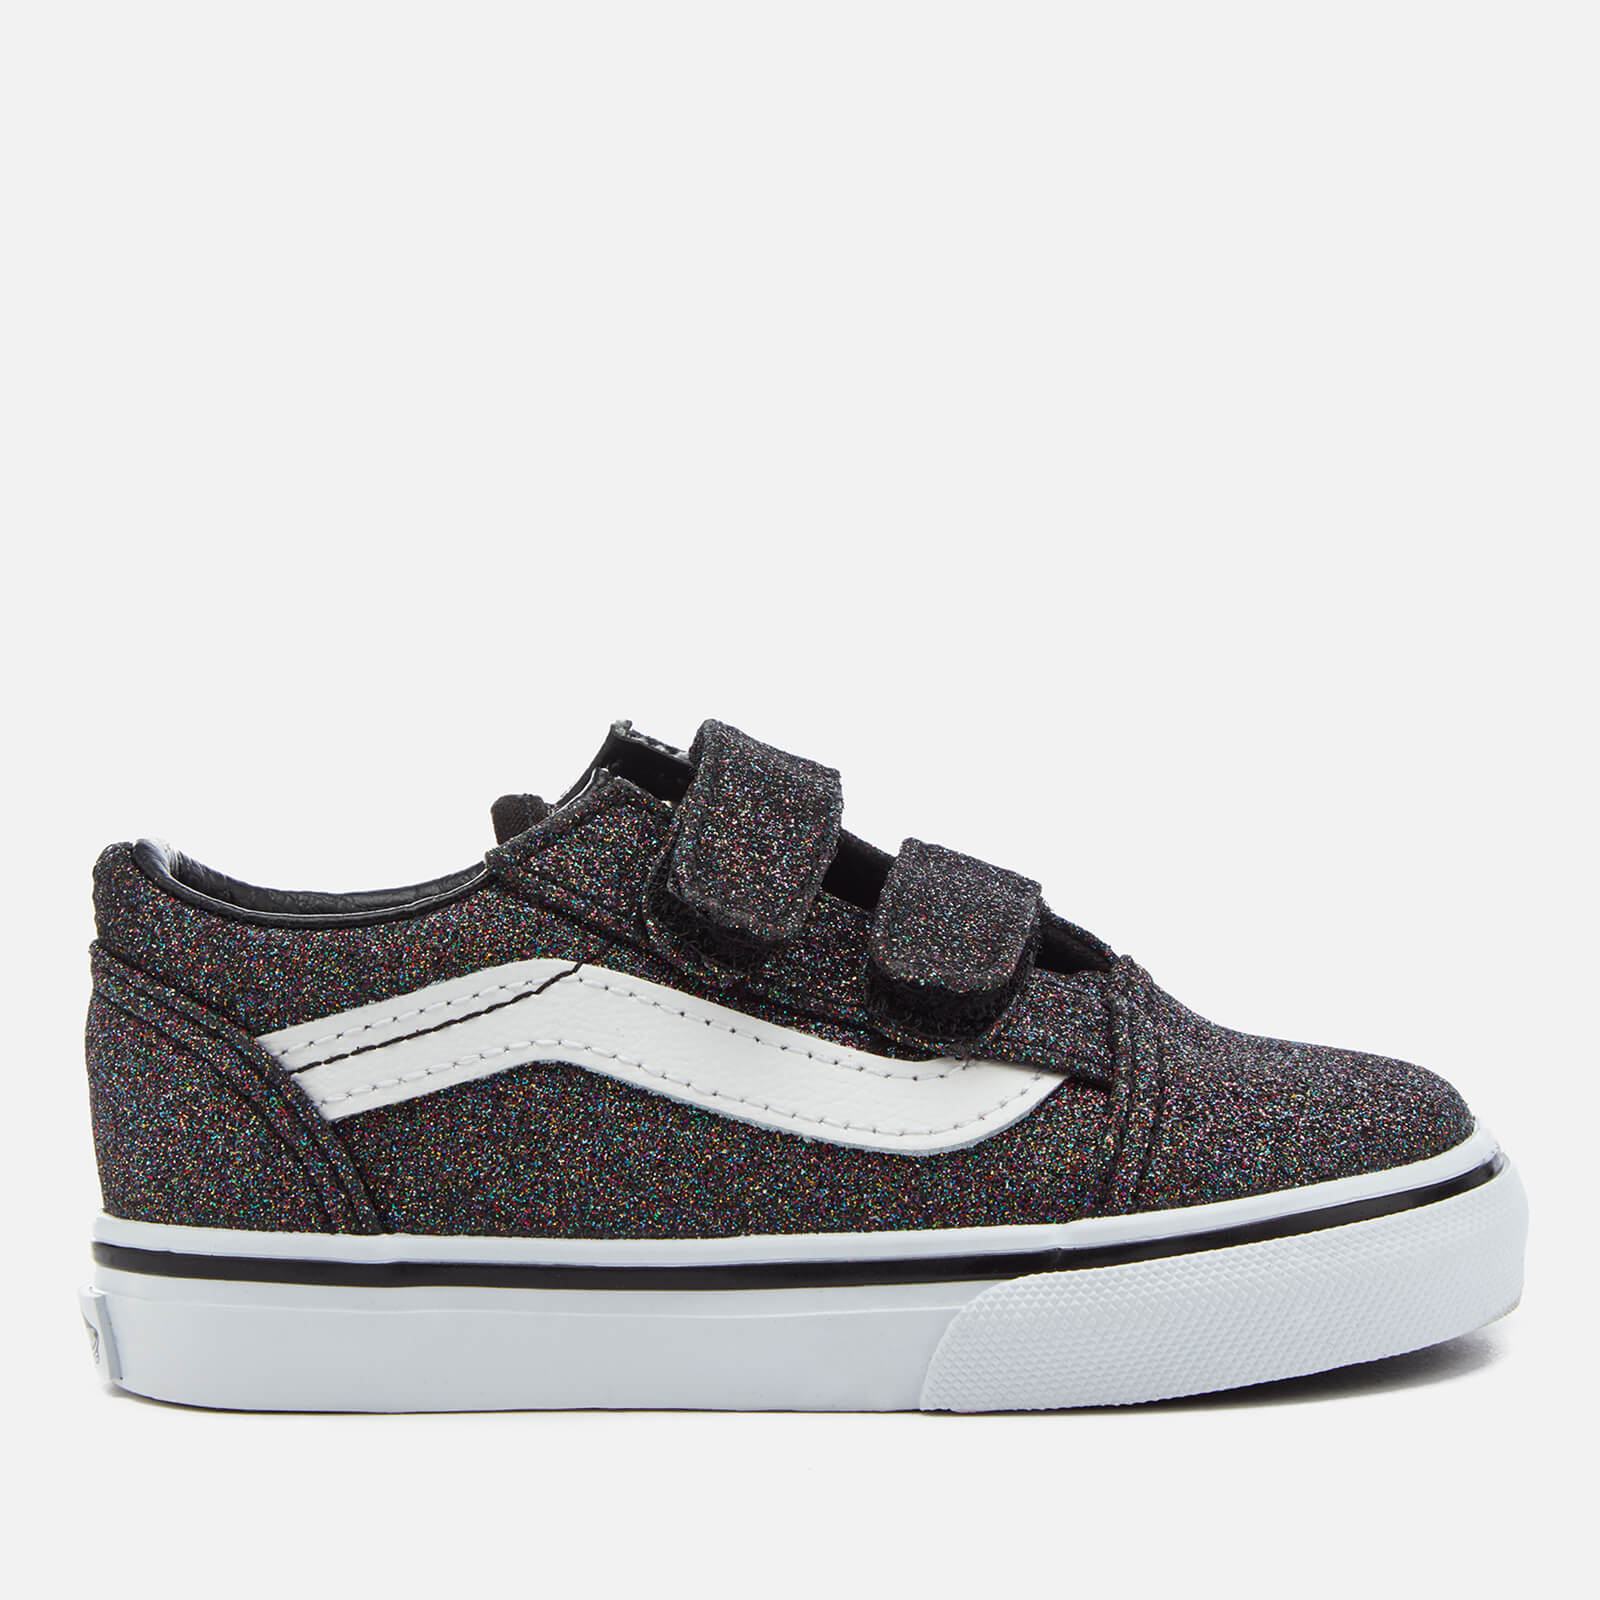 651e52d321e4 Vans Toddlers' Glitter Velcro Old Skool Trainers - Rainbow Black | FREE UK  Delivery | Allsole